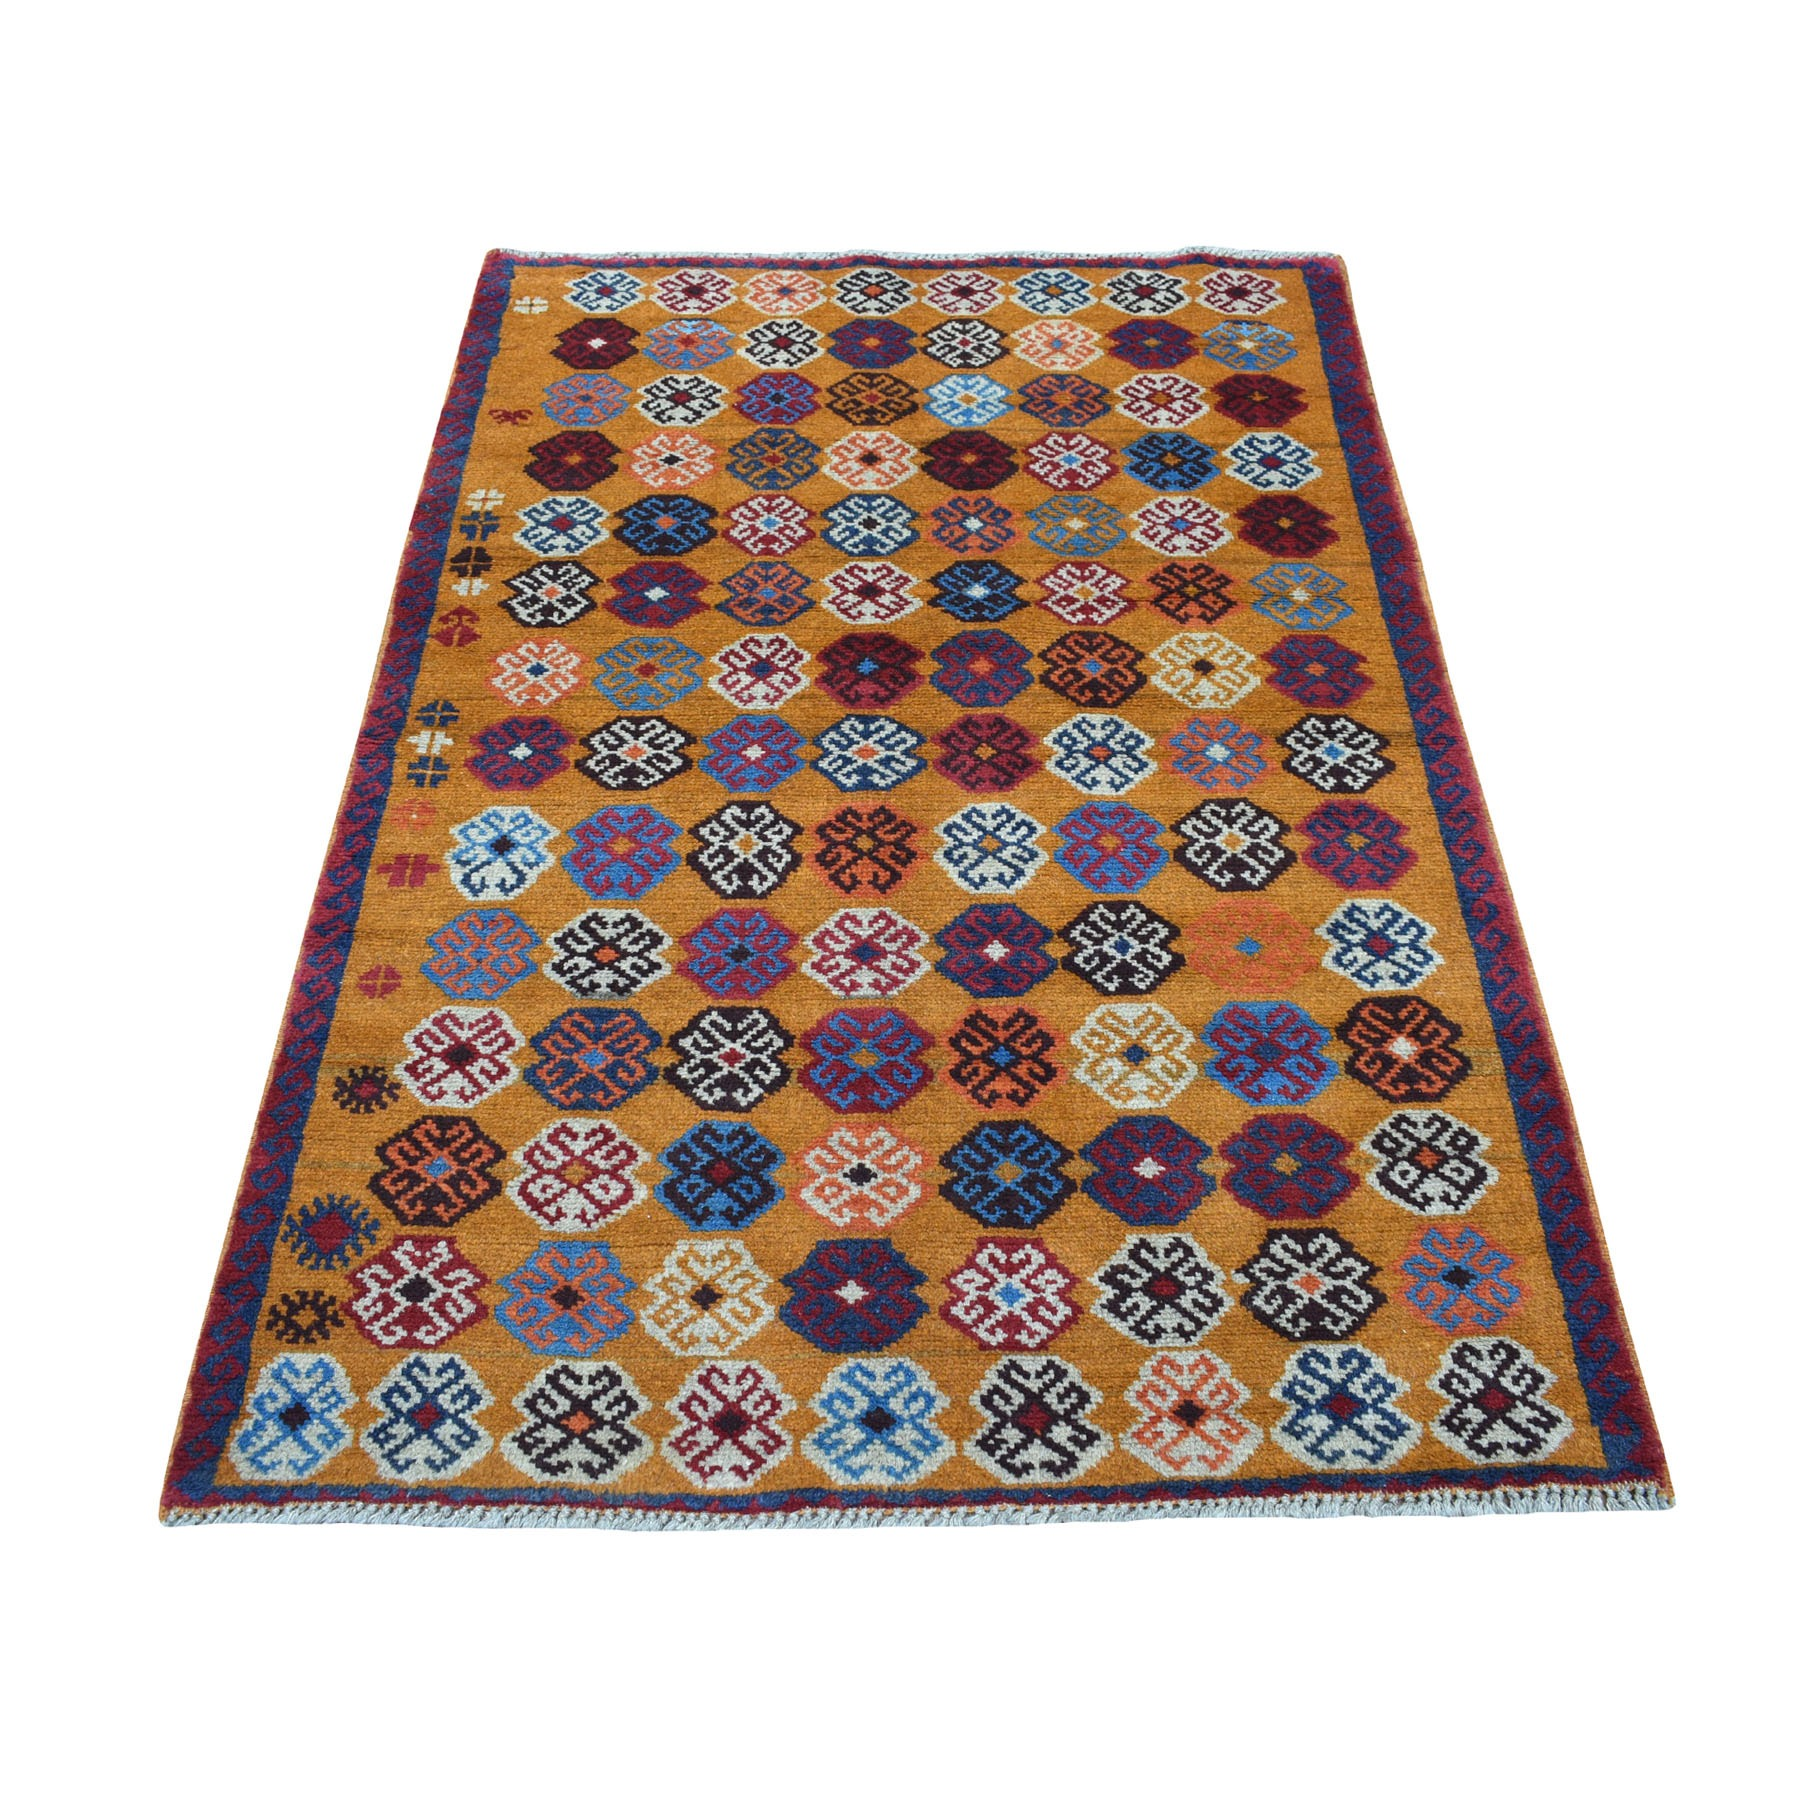 "3'8""x5'7"" Orange Colorful Afghan Baluch Tribal Design Hand Knotted Pure Wool Oriental Rug"